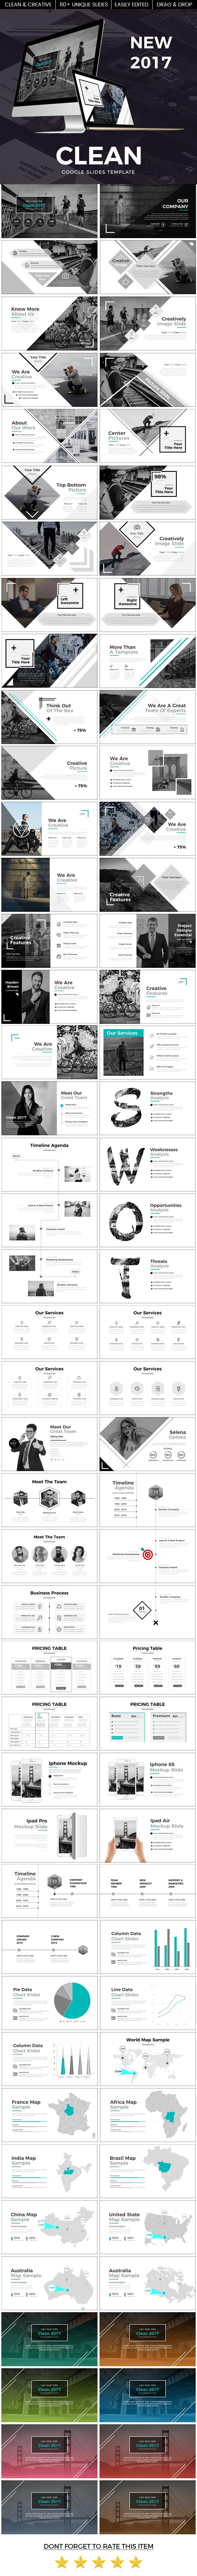 business infographic clean 2017 google slide template google